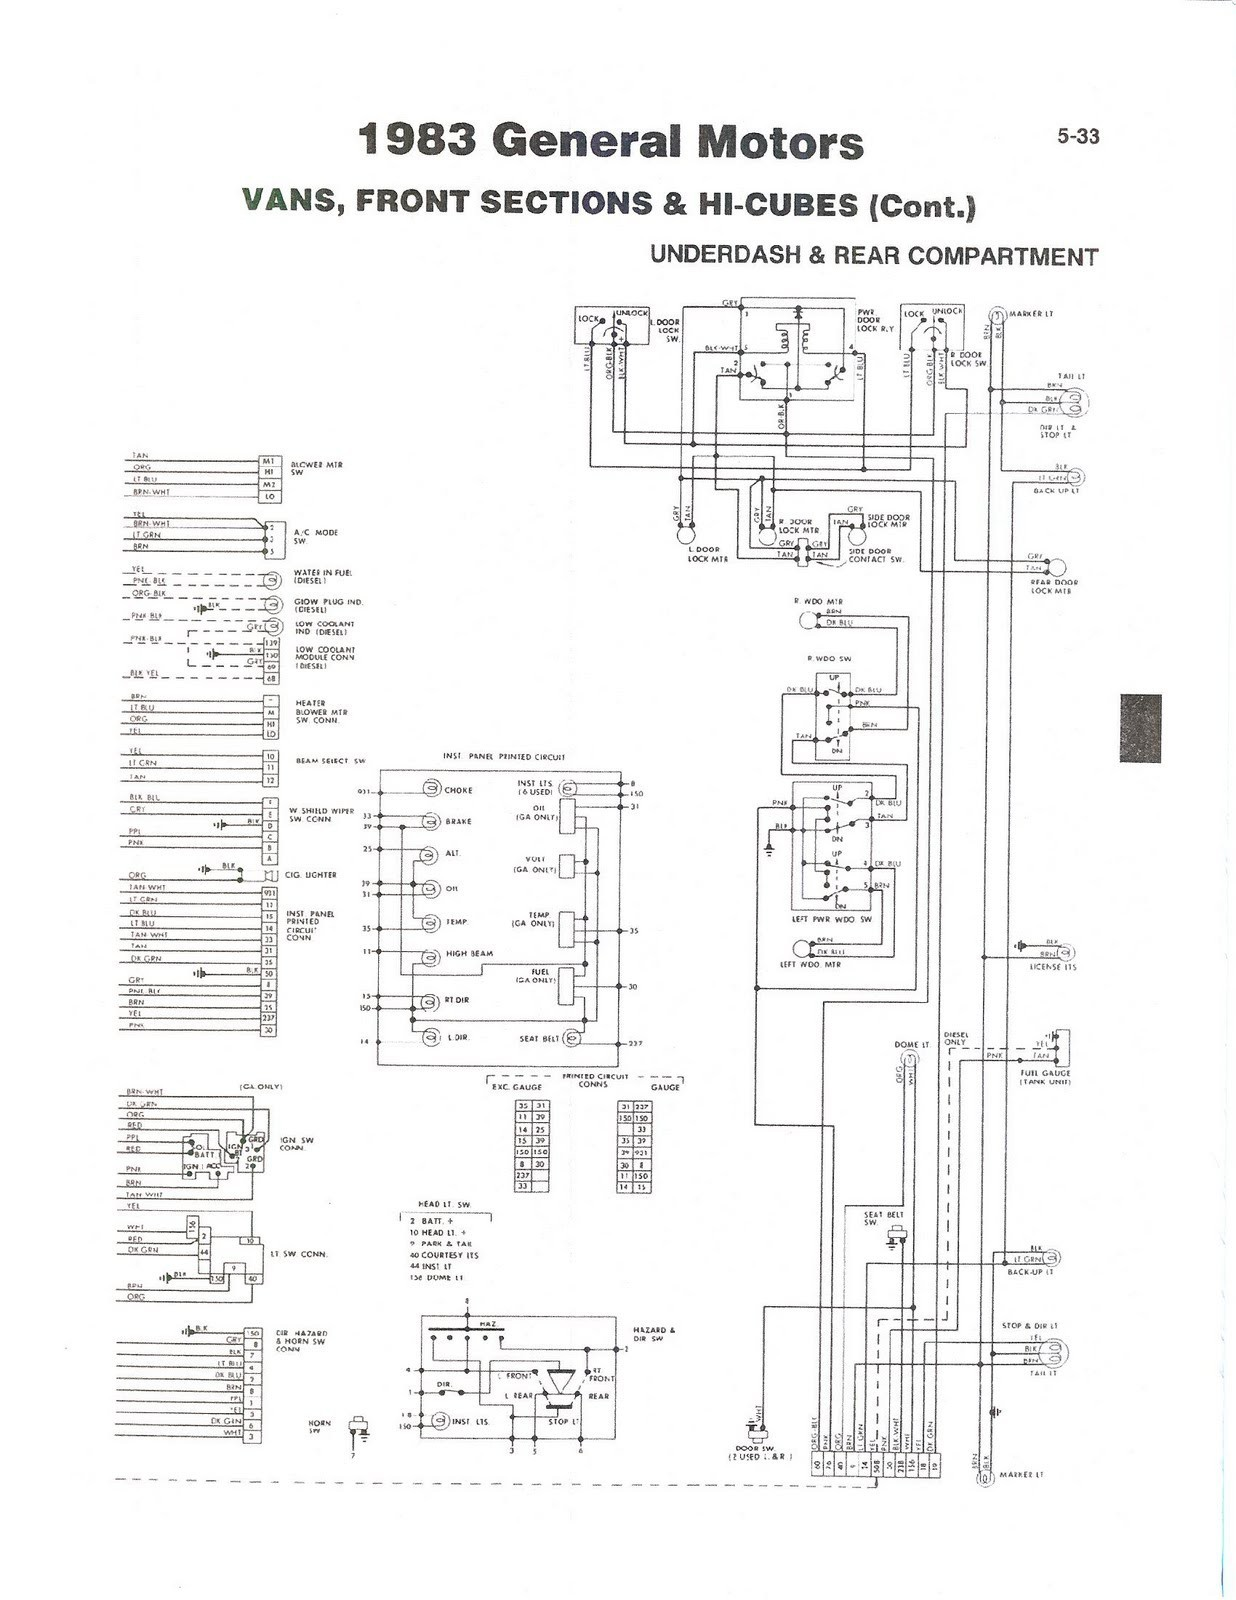 1999 Ford V1 0 F53 Wiring Library Trailer Diagram Motorhome Solutions 2017 Southwind